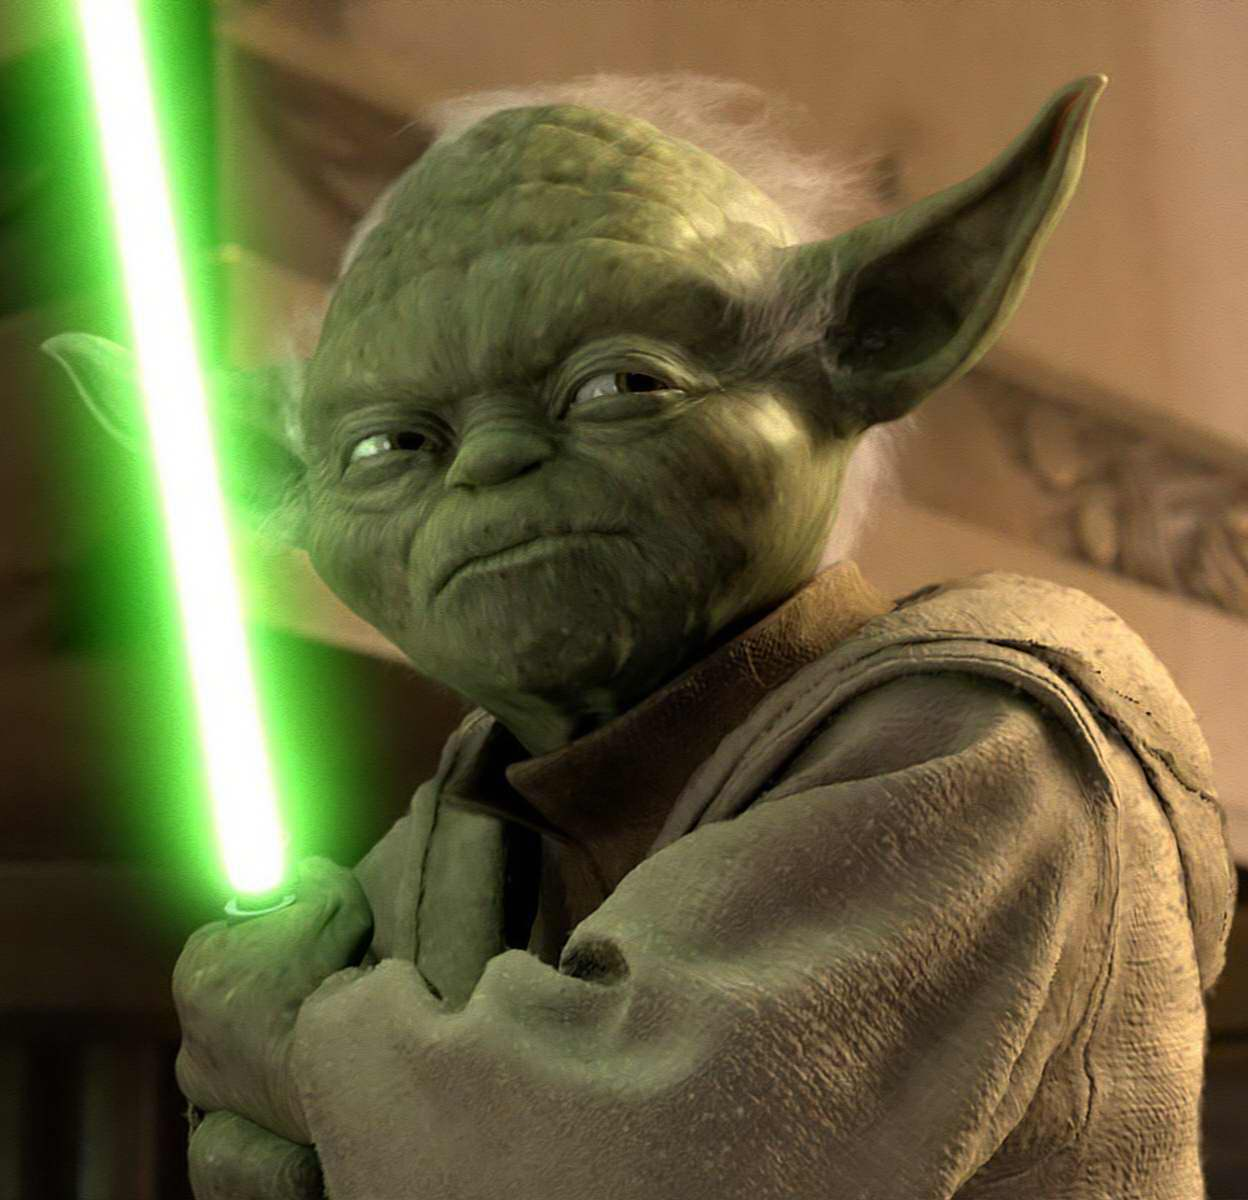 Yoda's CGI appearance in Attack of the Clones (2002)